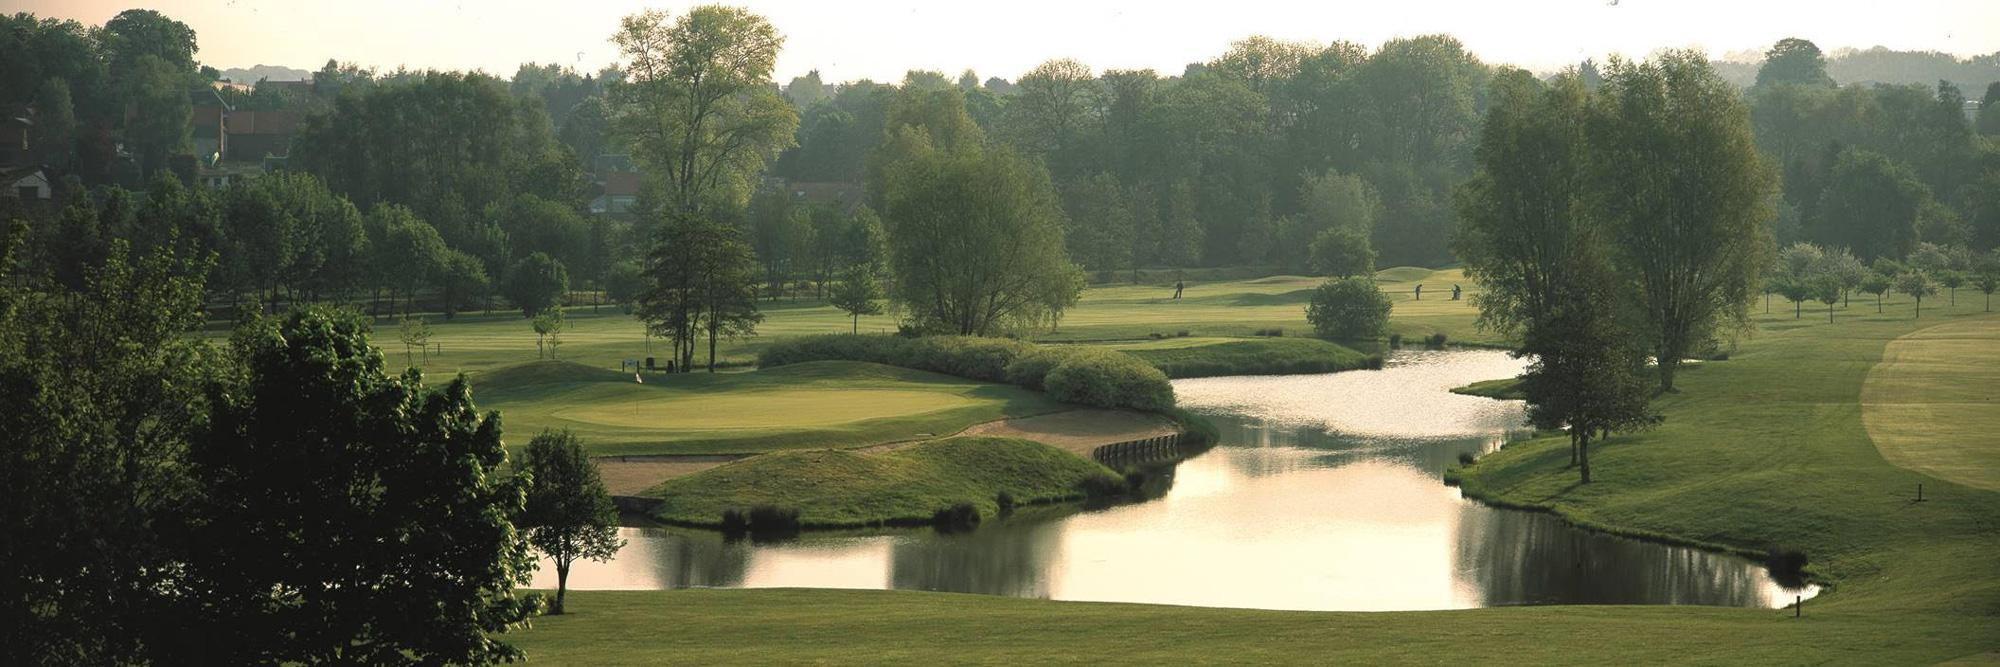 Golf d Arras has got some of the premiere golf course within Northern France